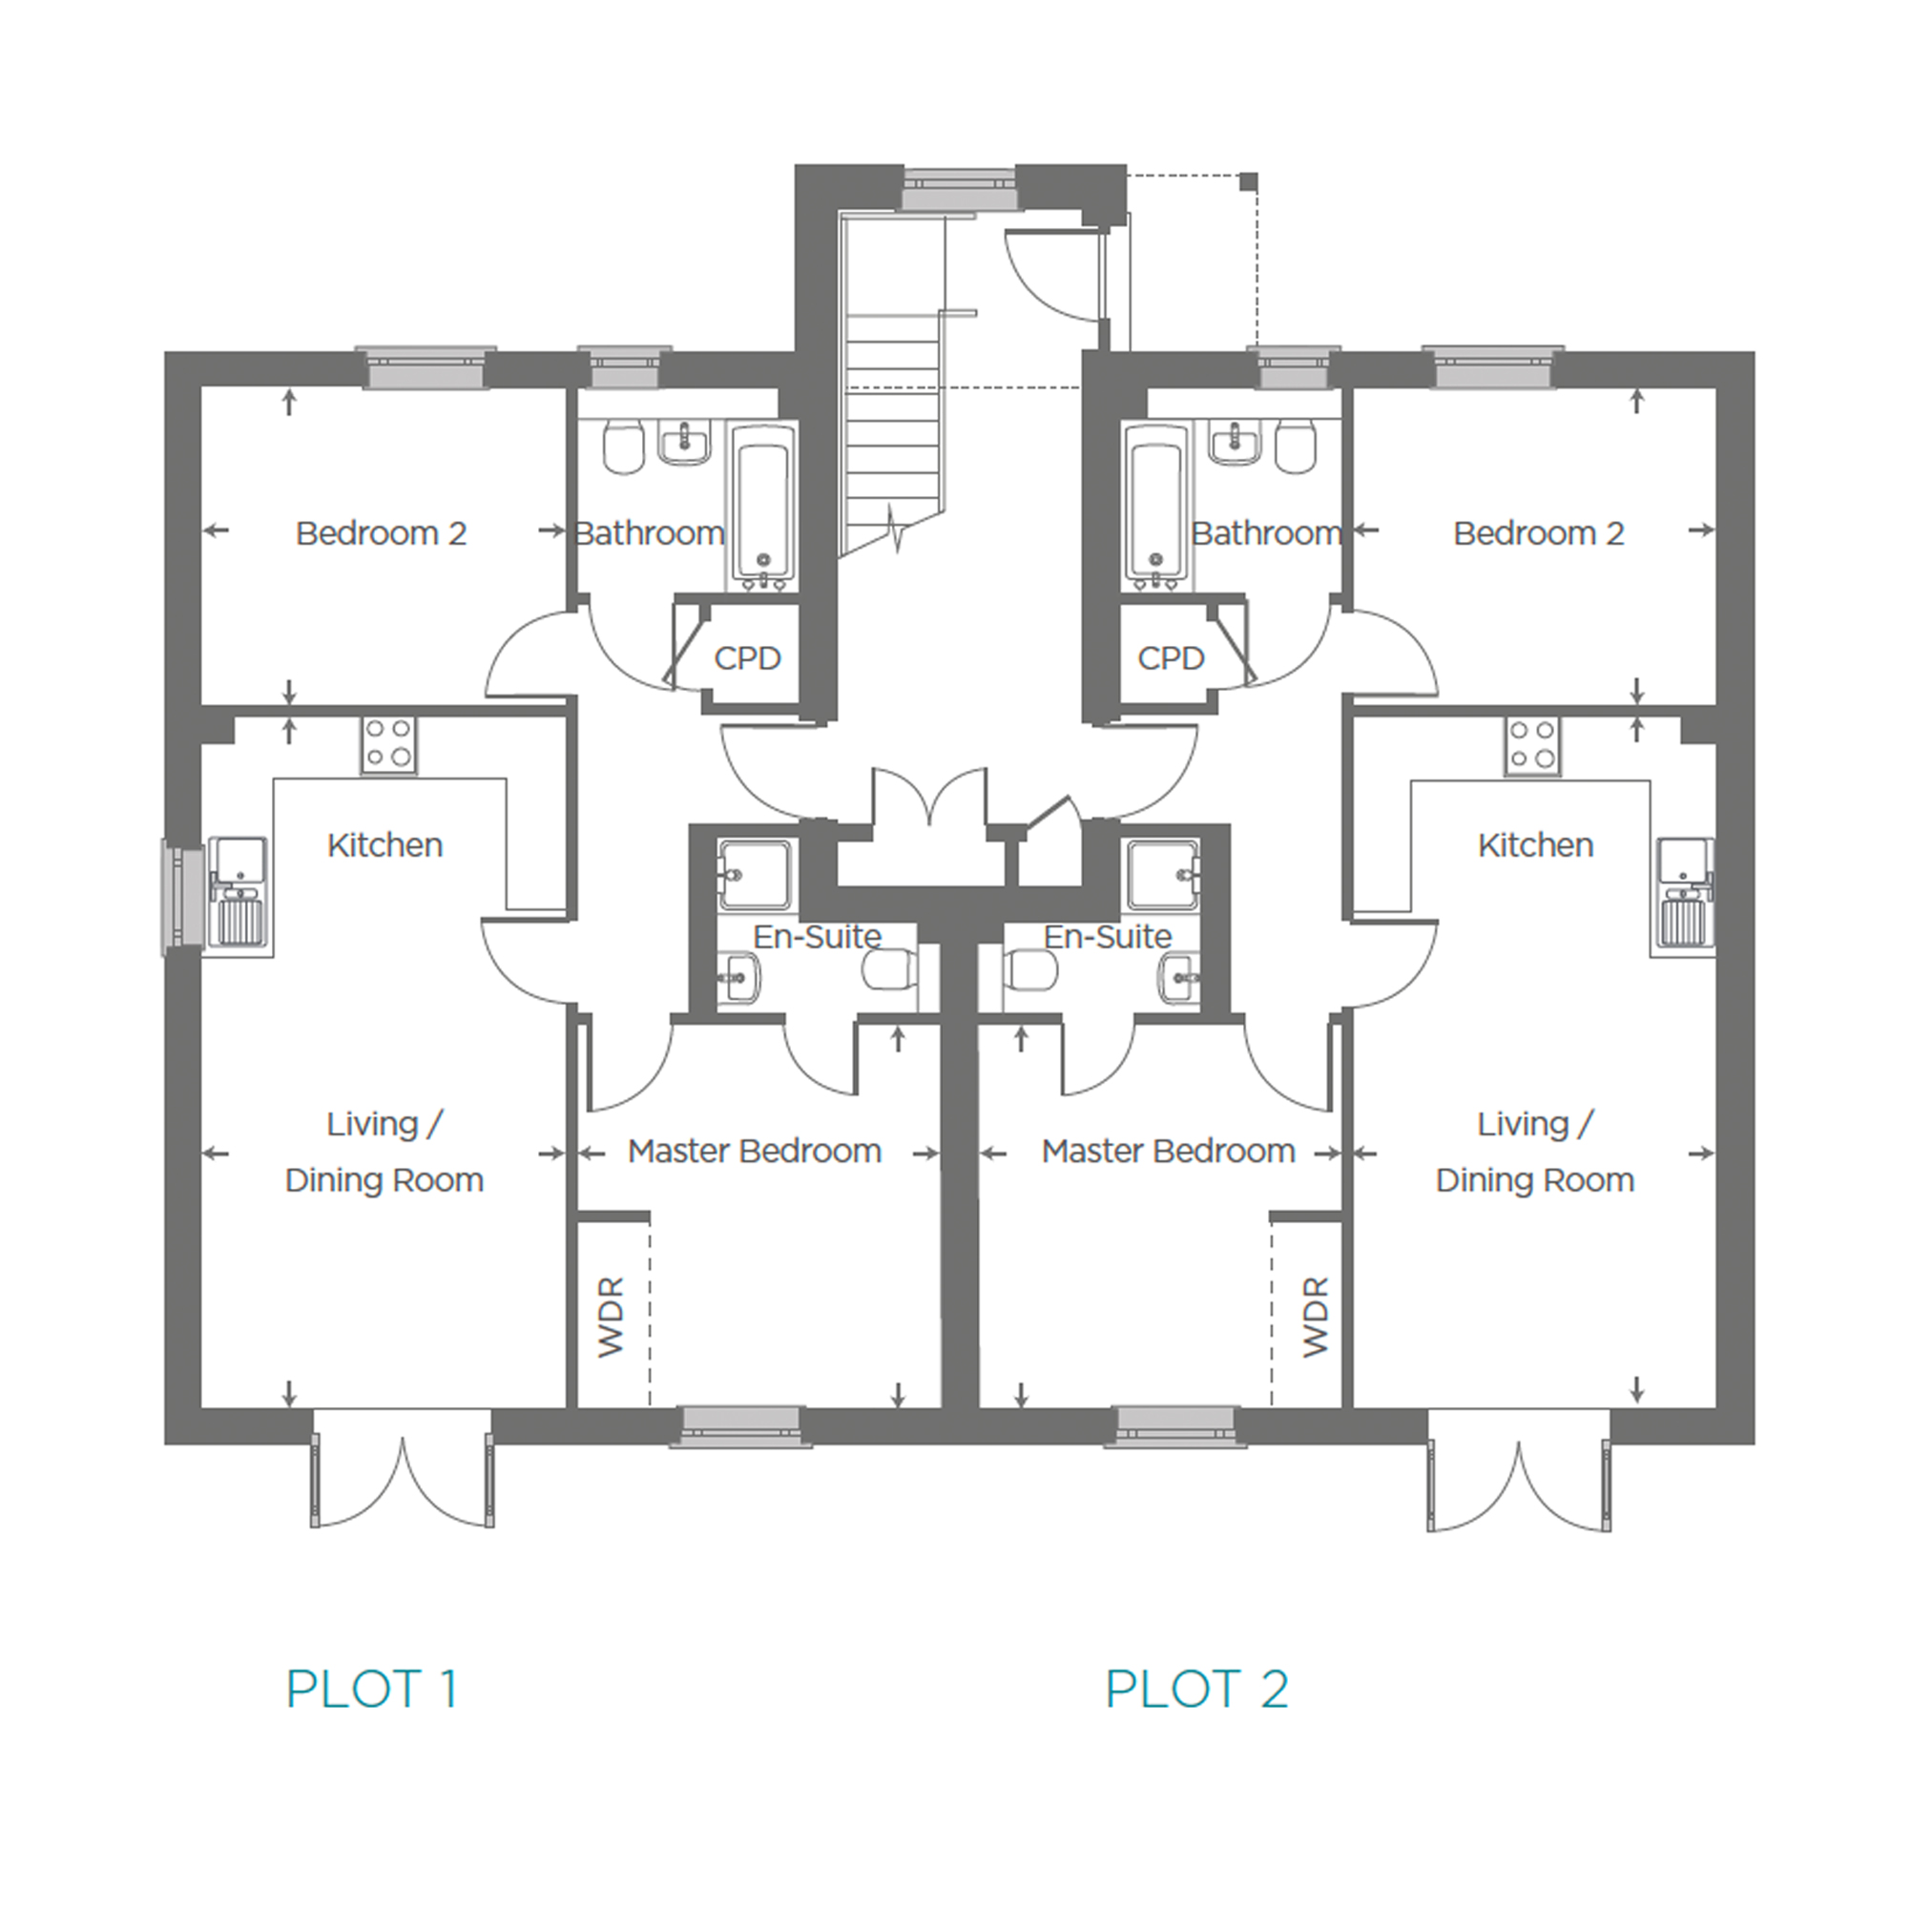 FORTNIGHTLY HARD HAT TOURS AT KINGSFIELD COURT, AYLESBURY Floor plan